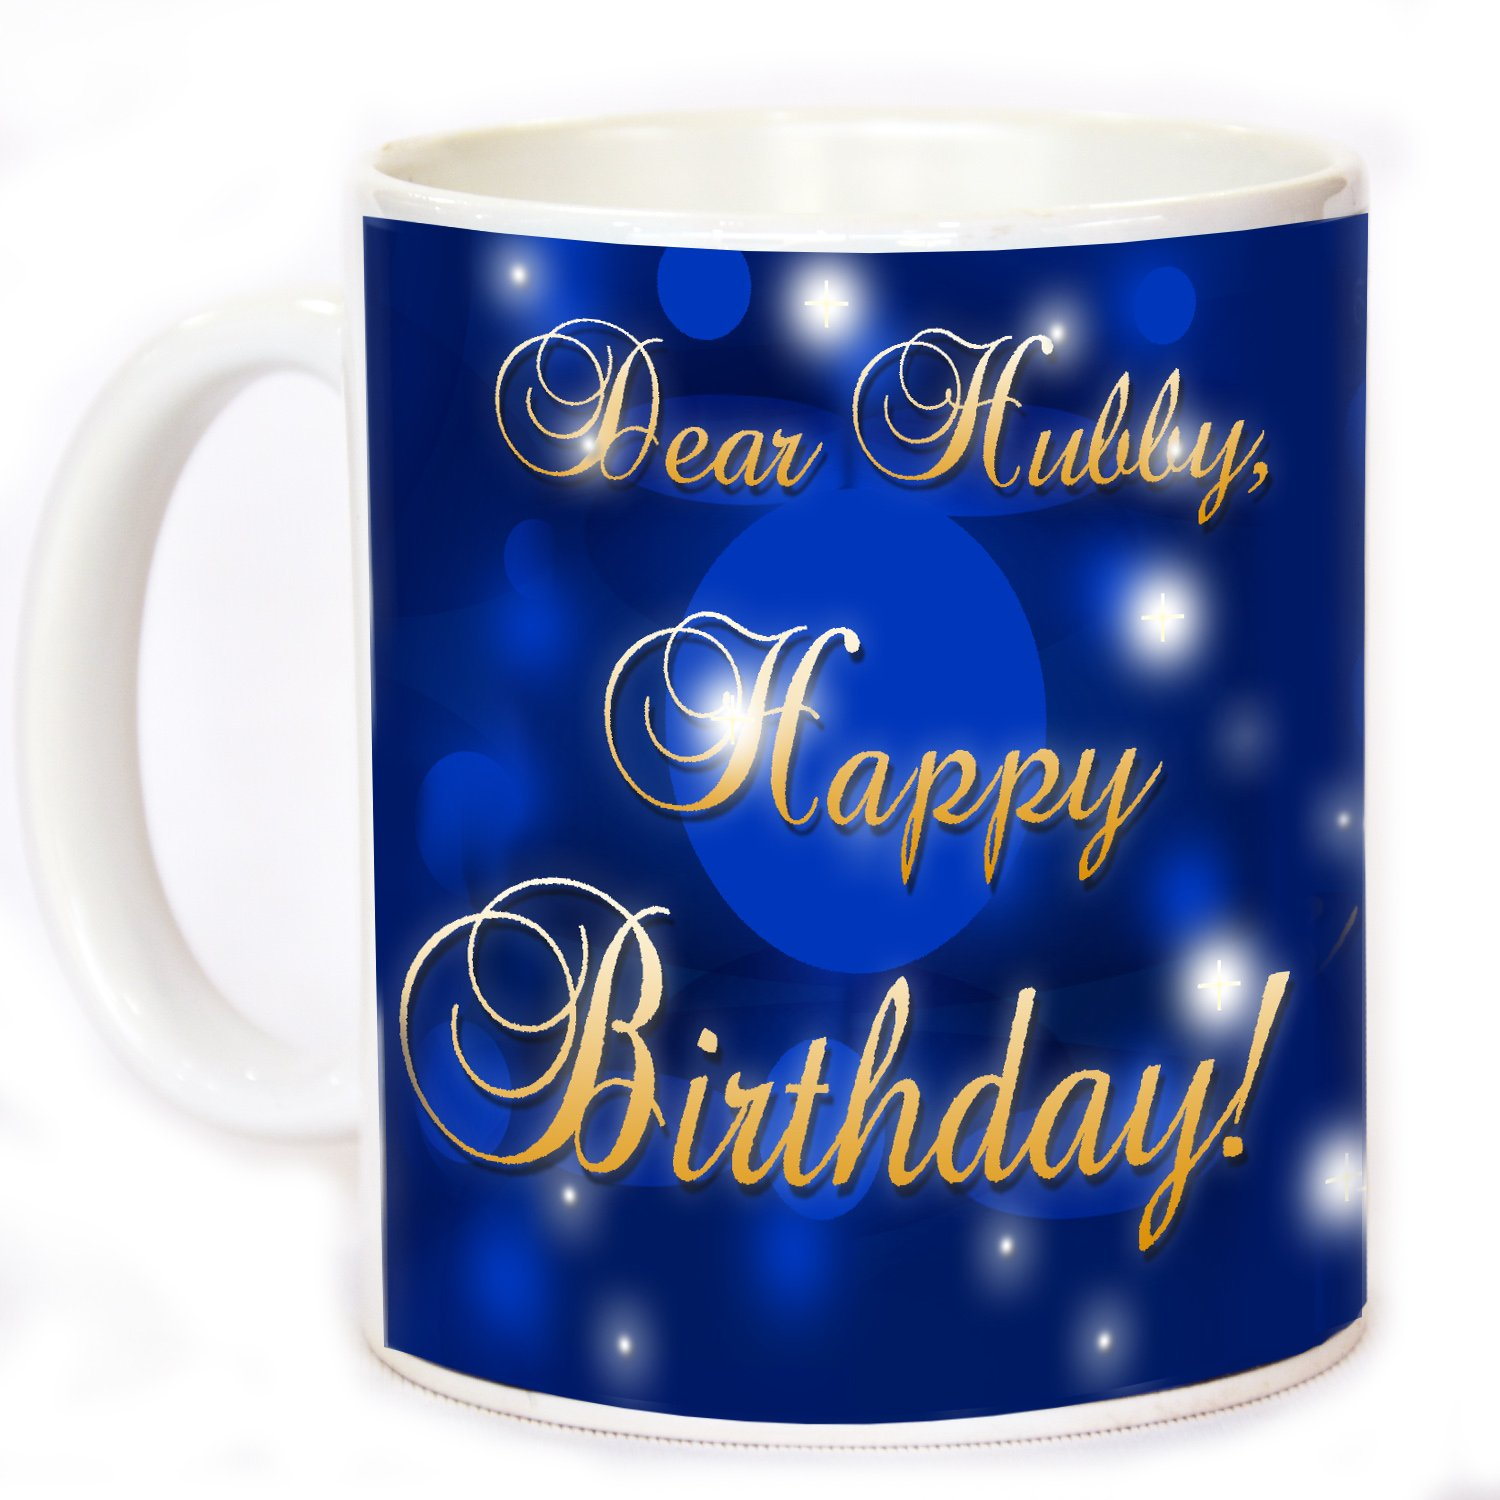 Tohfah4u Happy Birthday Gift Set for Husband 1 Mug 1 Ganesha